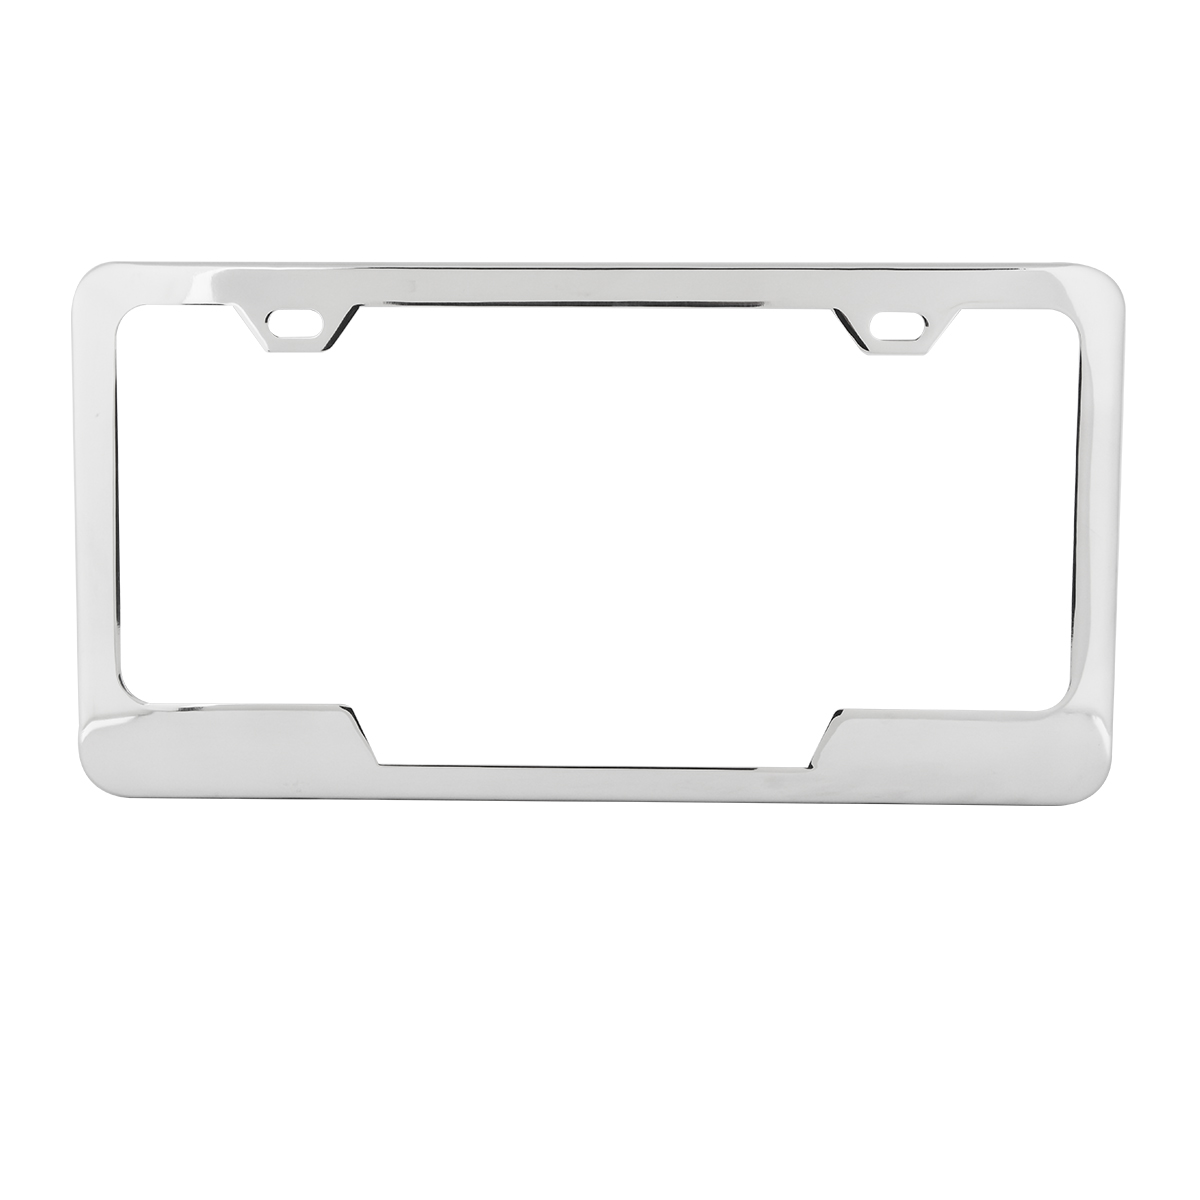 60405 Plain 2-Hole License Plate Frames with Center Cut